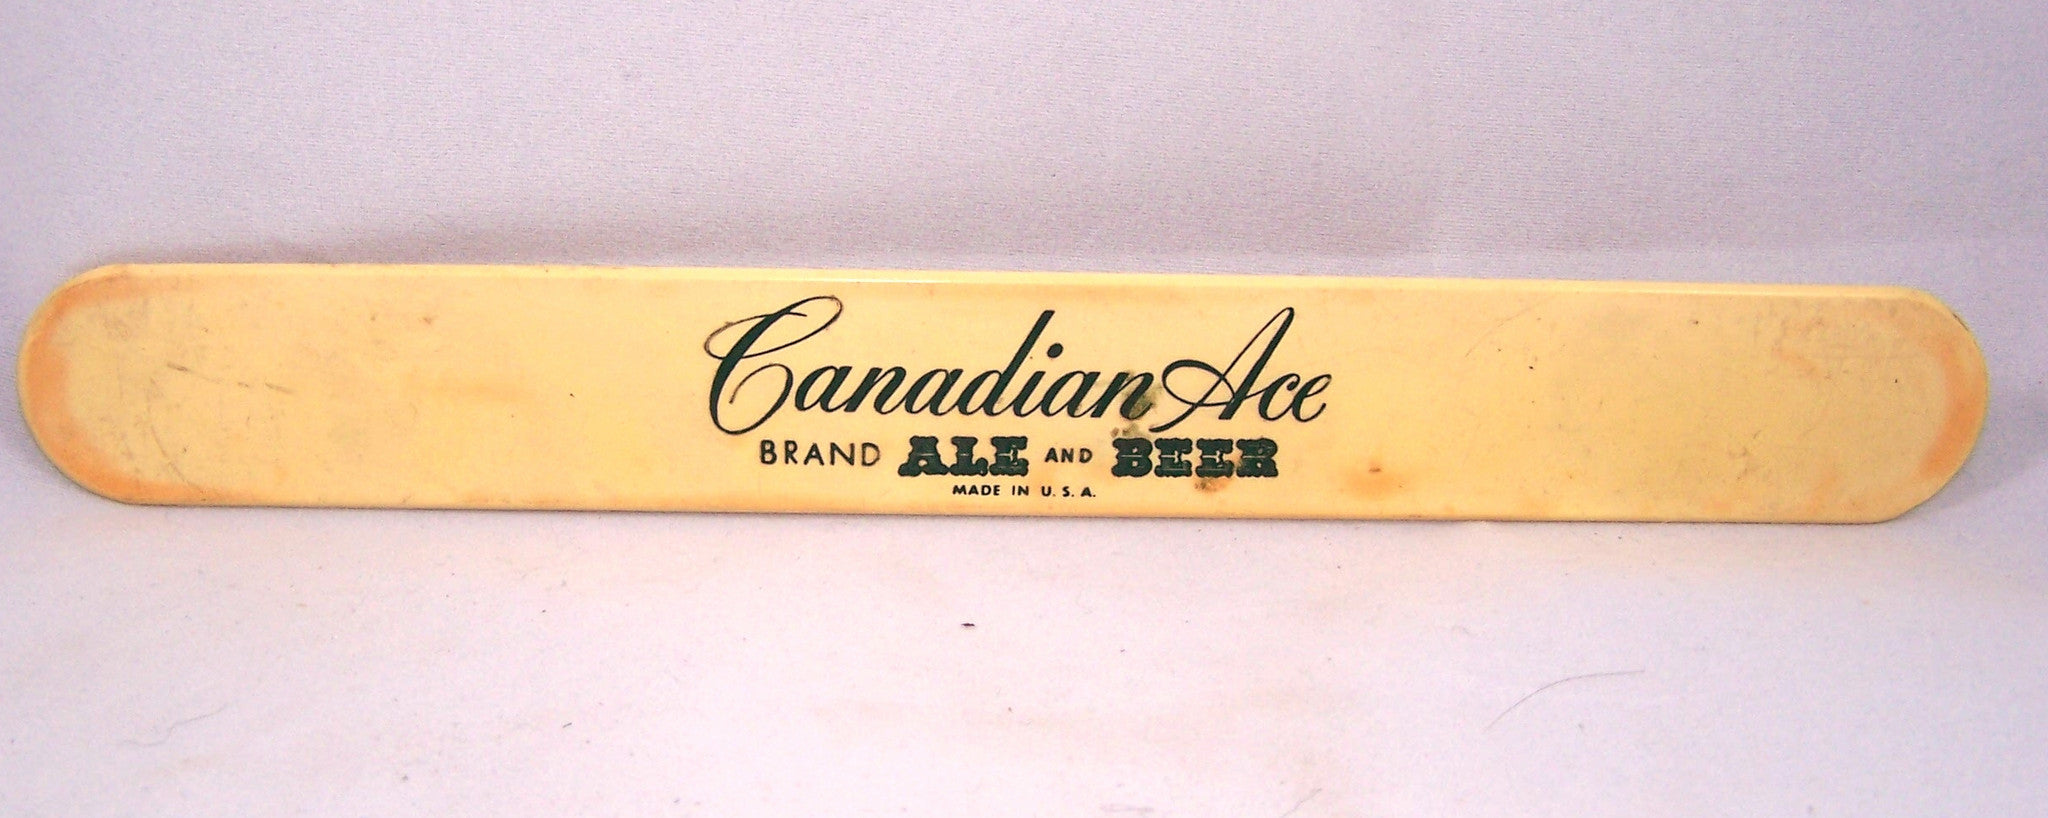 Canadian Ace Brand Ale and Beer foam scraper, two sided.